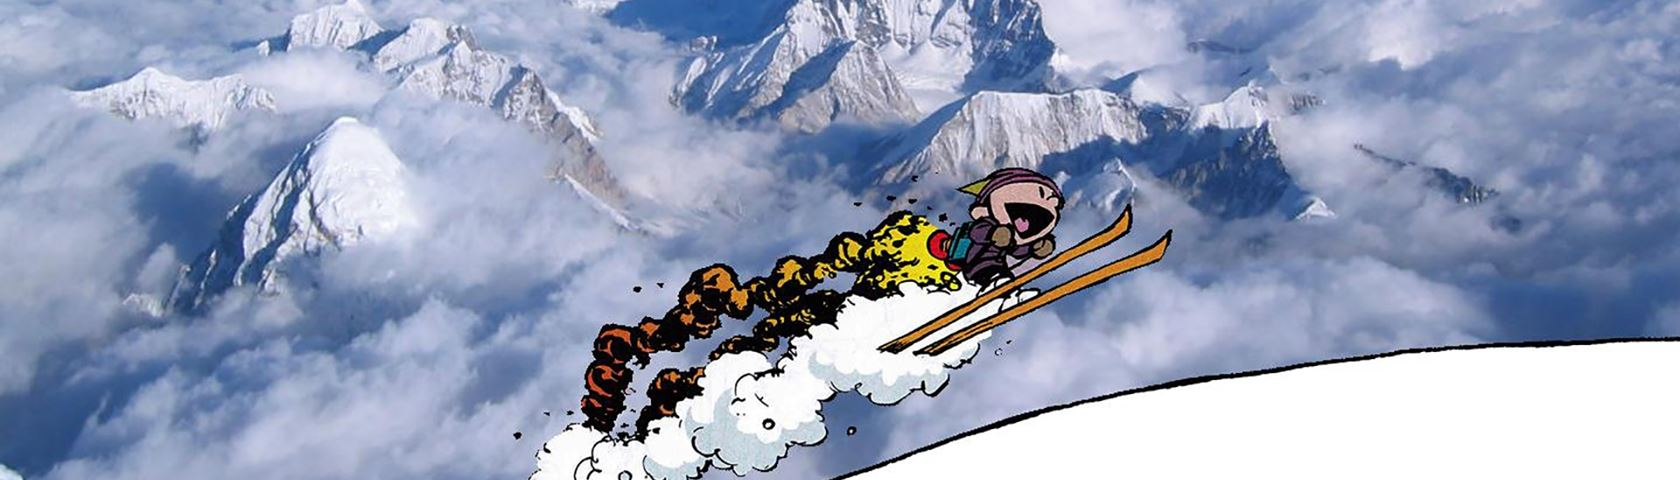 Calvin and Hobbes with Rocket Skis